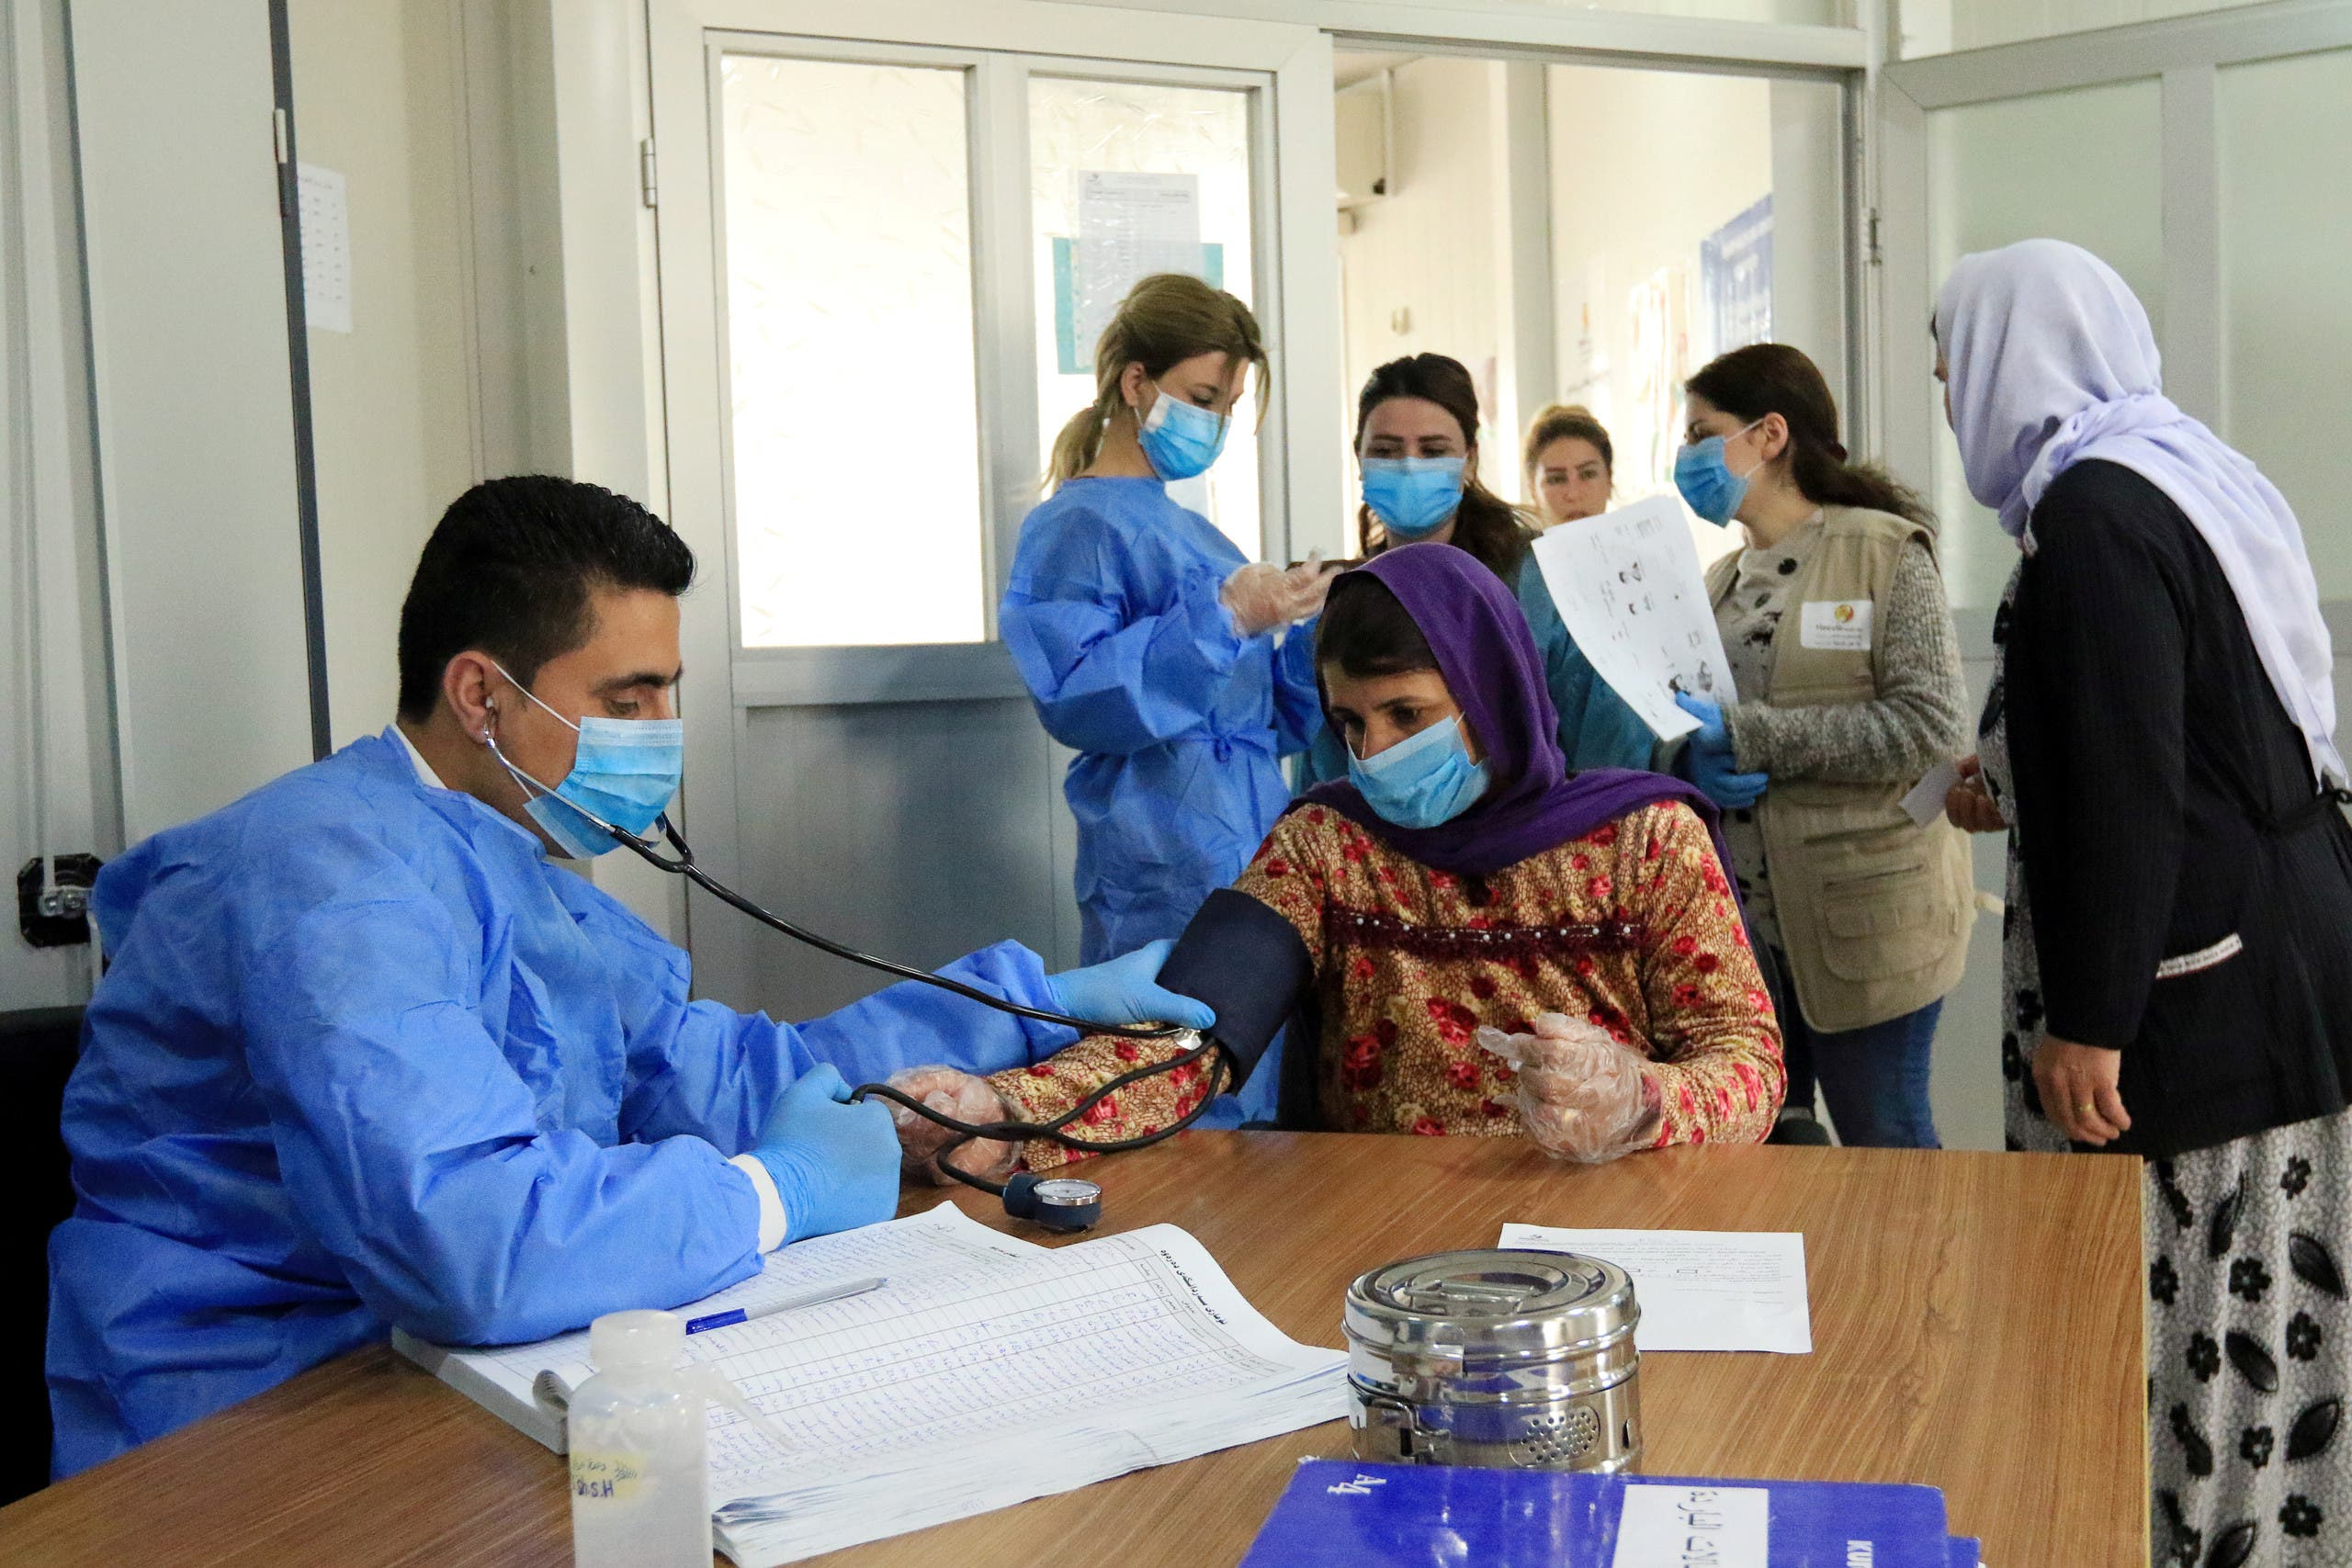 A doctor checks the blood pressure of a Yazidi displaced woman, as they wear protective face masks, following the coronavirus outbreak, at medical Center in the Sharya camp in Duhok, Iraq March 7, 2020. (Reuters)